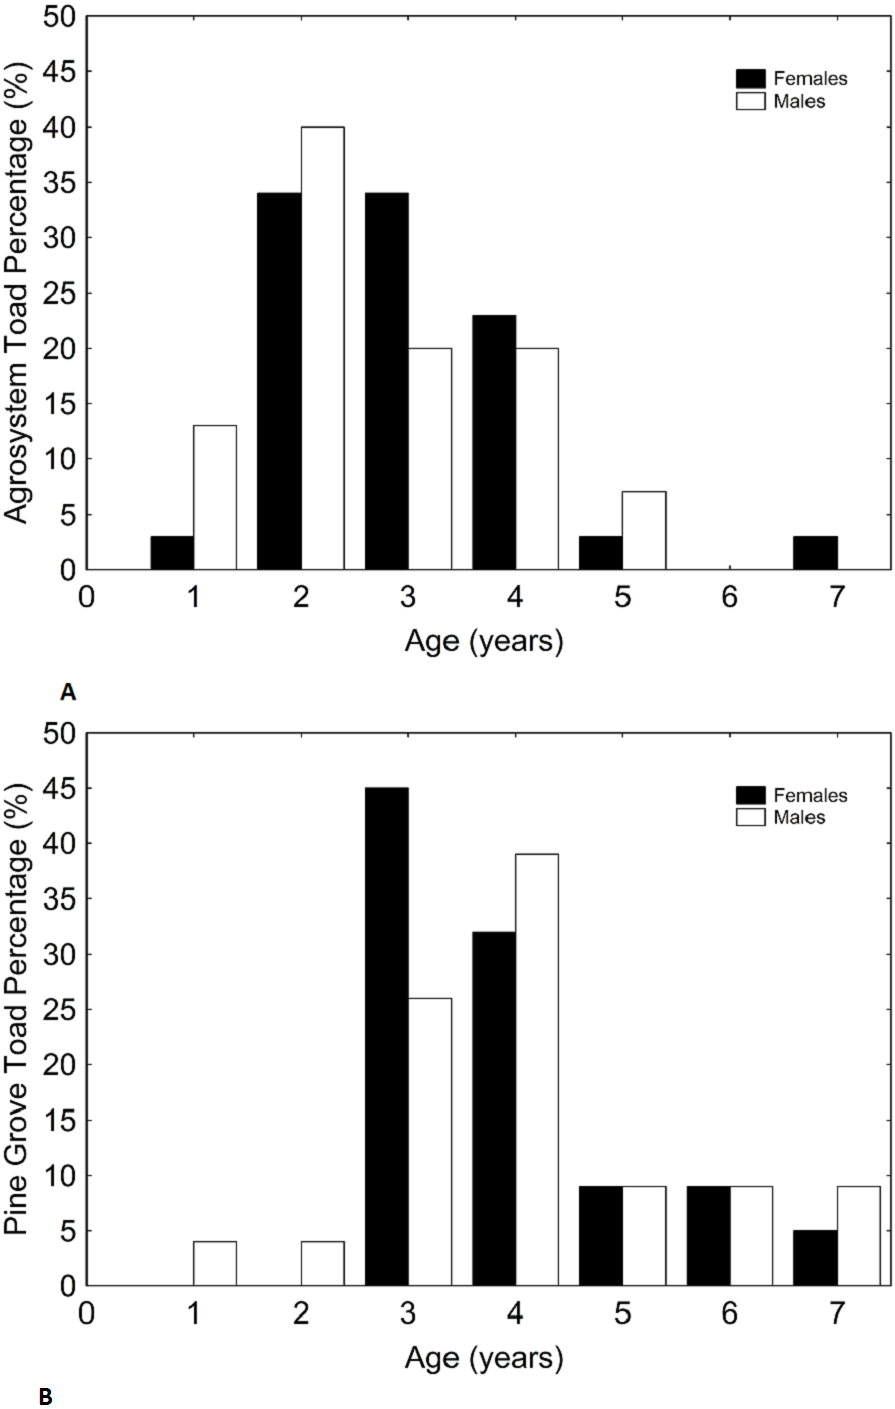 Greater reproductive investment, but shorter lifespan, in agrosystem